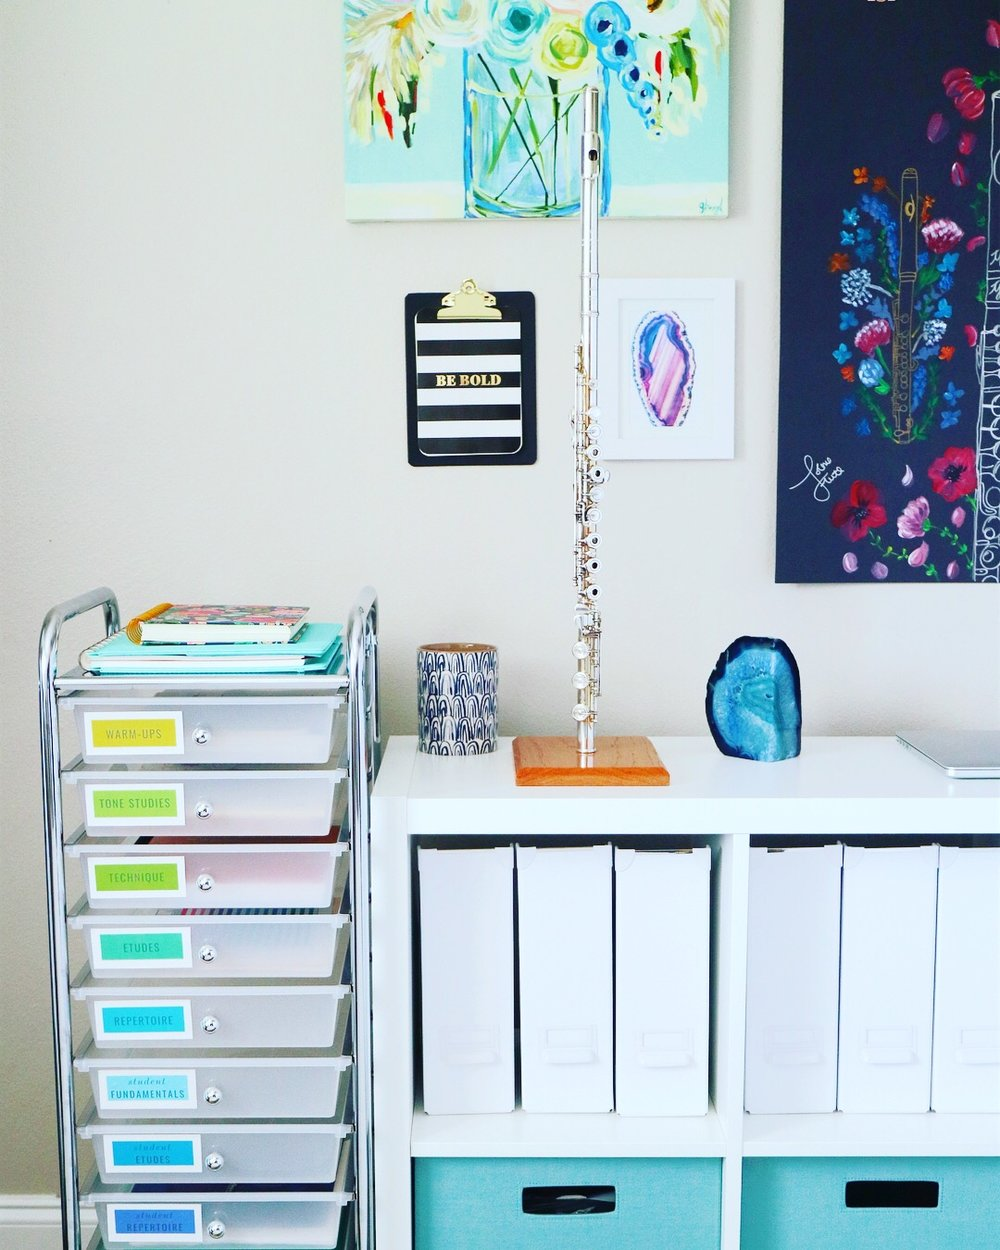 The 10-Drawer Cart from Michael's has been a game-changer for music piles! Finding the right system makes all the difference!